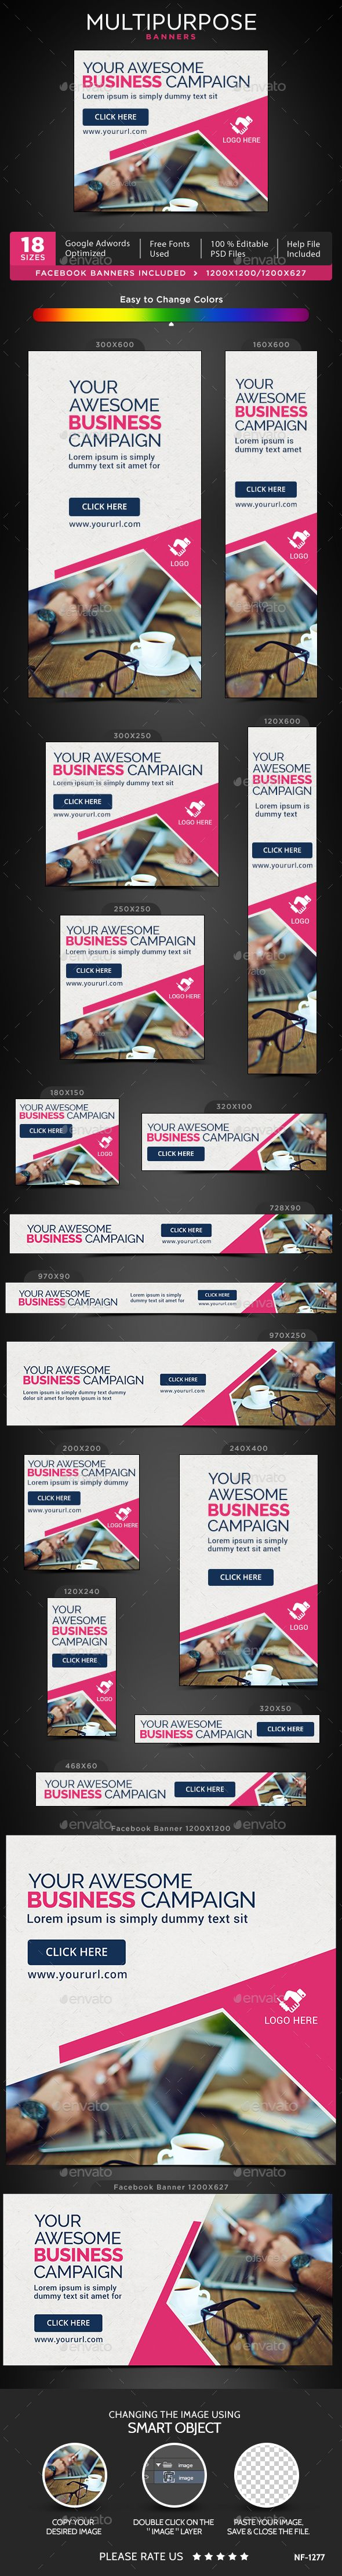 Multipurpose Banners Template PSD. Download here: http://graphicriver.net/item/multipurpose-banners/16048138?ref=ksioks